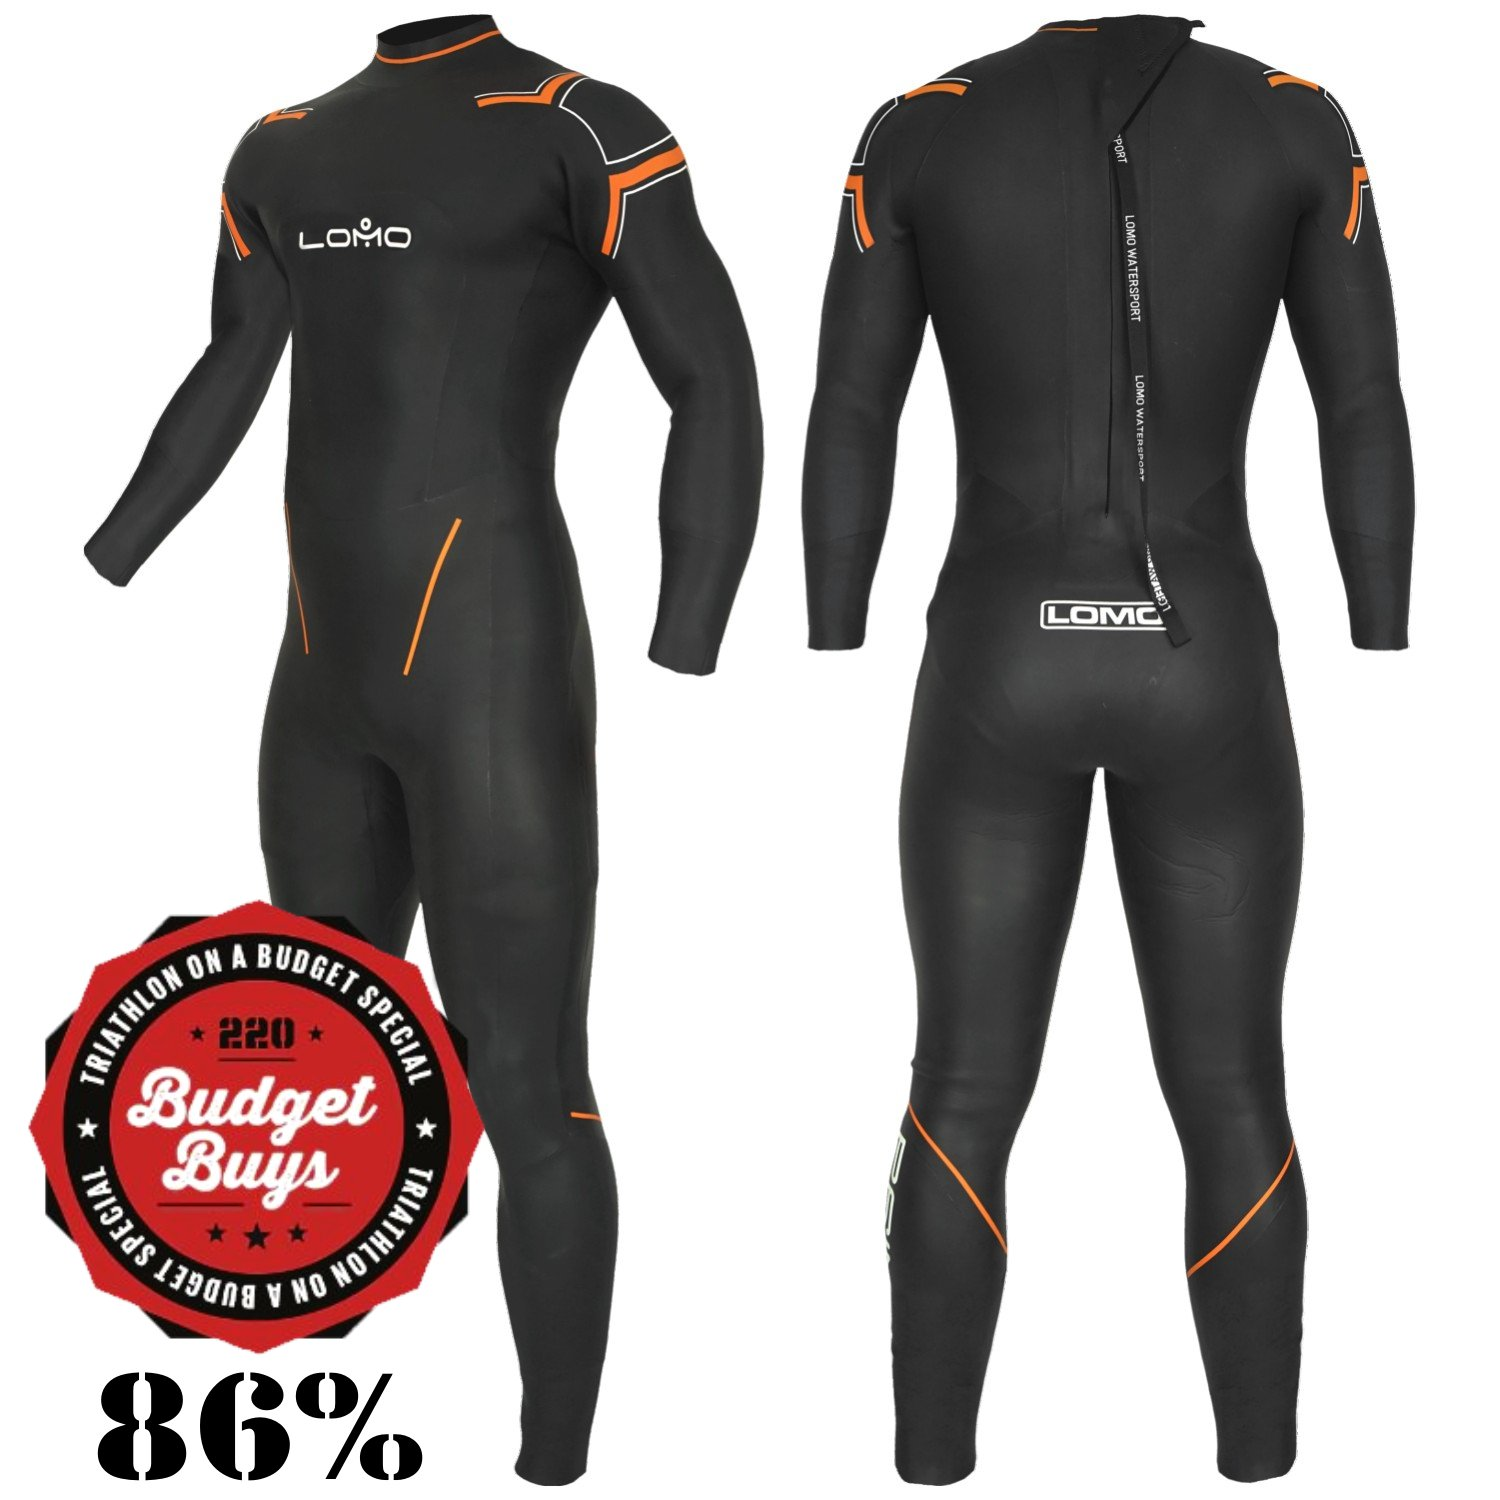 Prime Triathlon and Swimming Wetsuit - Male